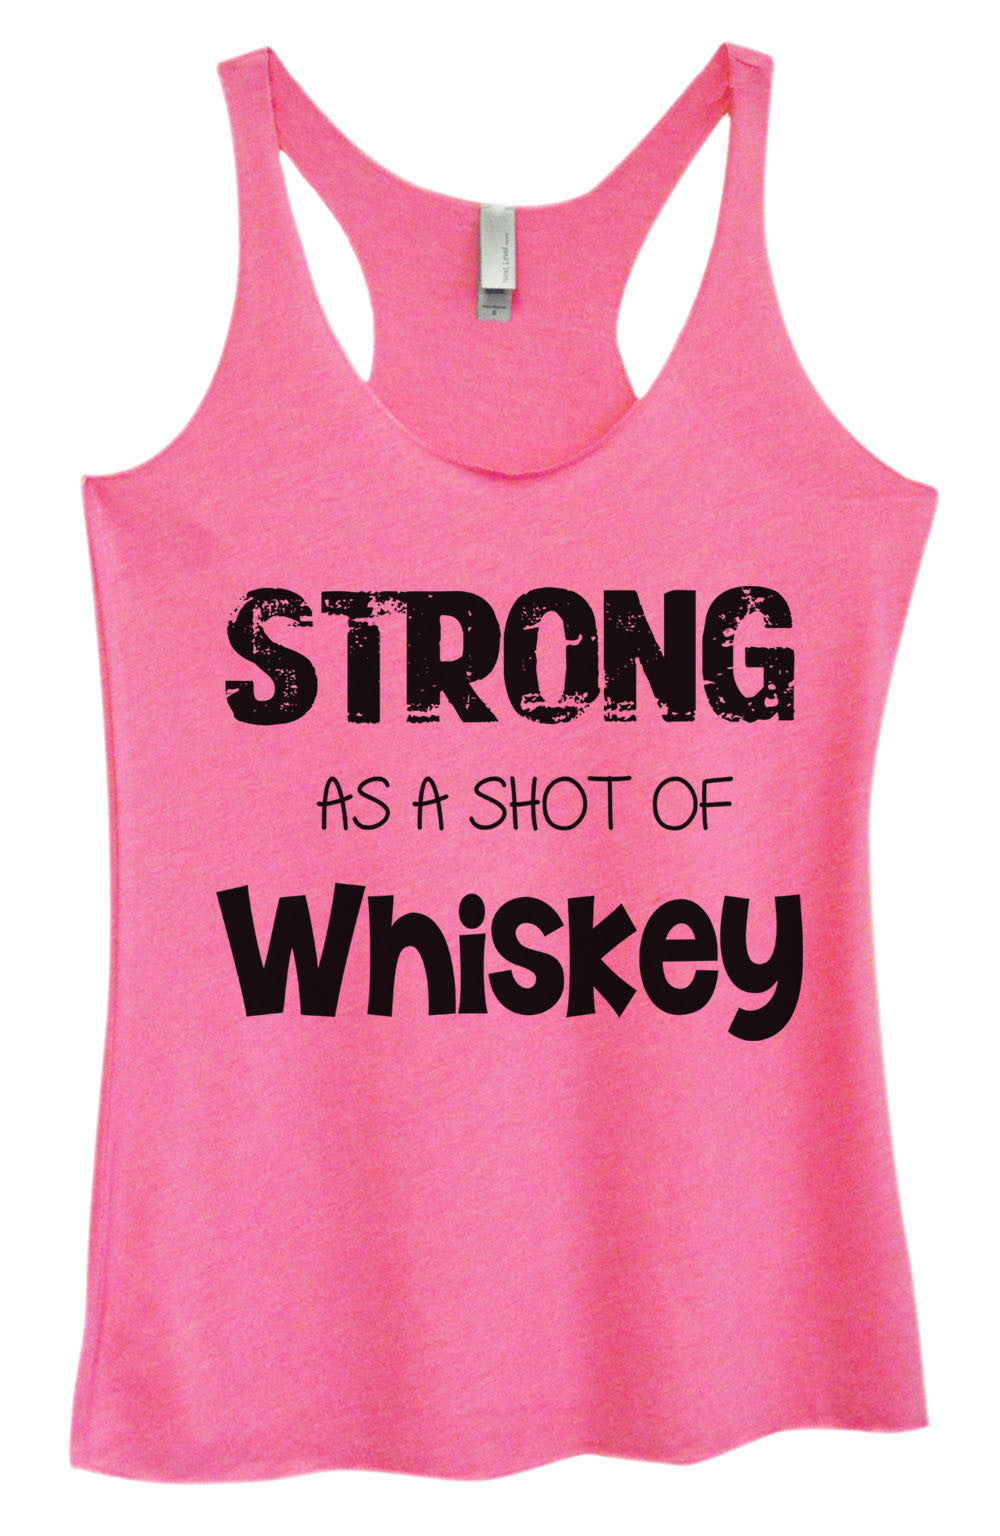 Womens Fashion Triblend Tank Top - Strong As A Shot Of Whiskey - Tri-717 - Funny Shirts Tank Tops Burnouts and Triblends  - 4